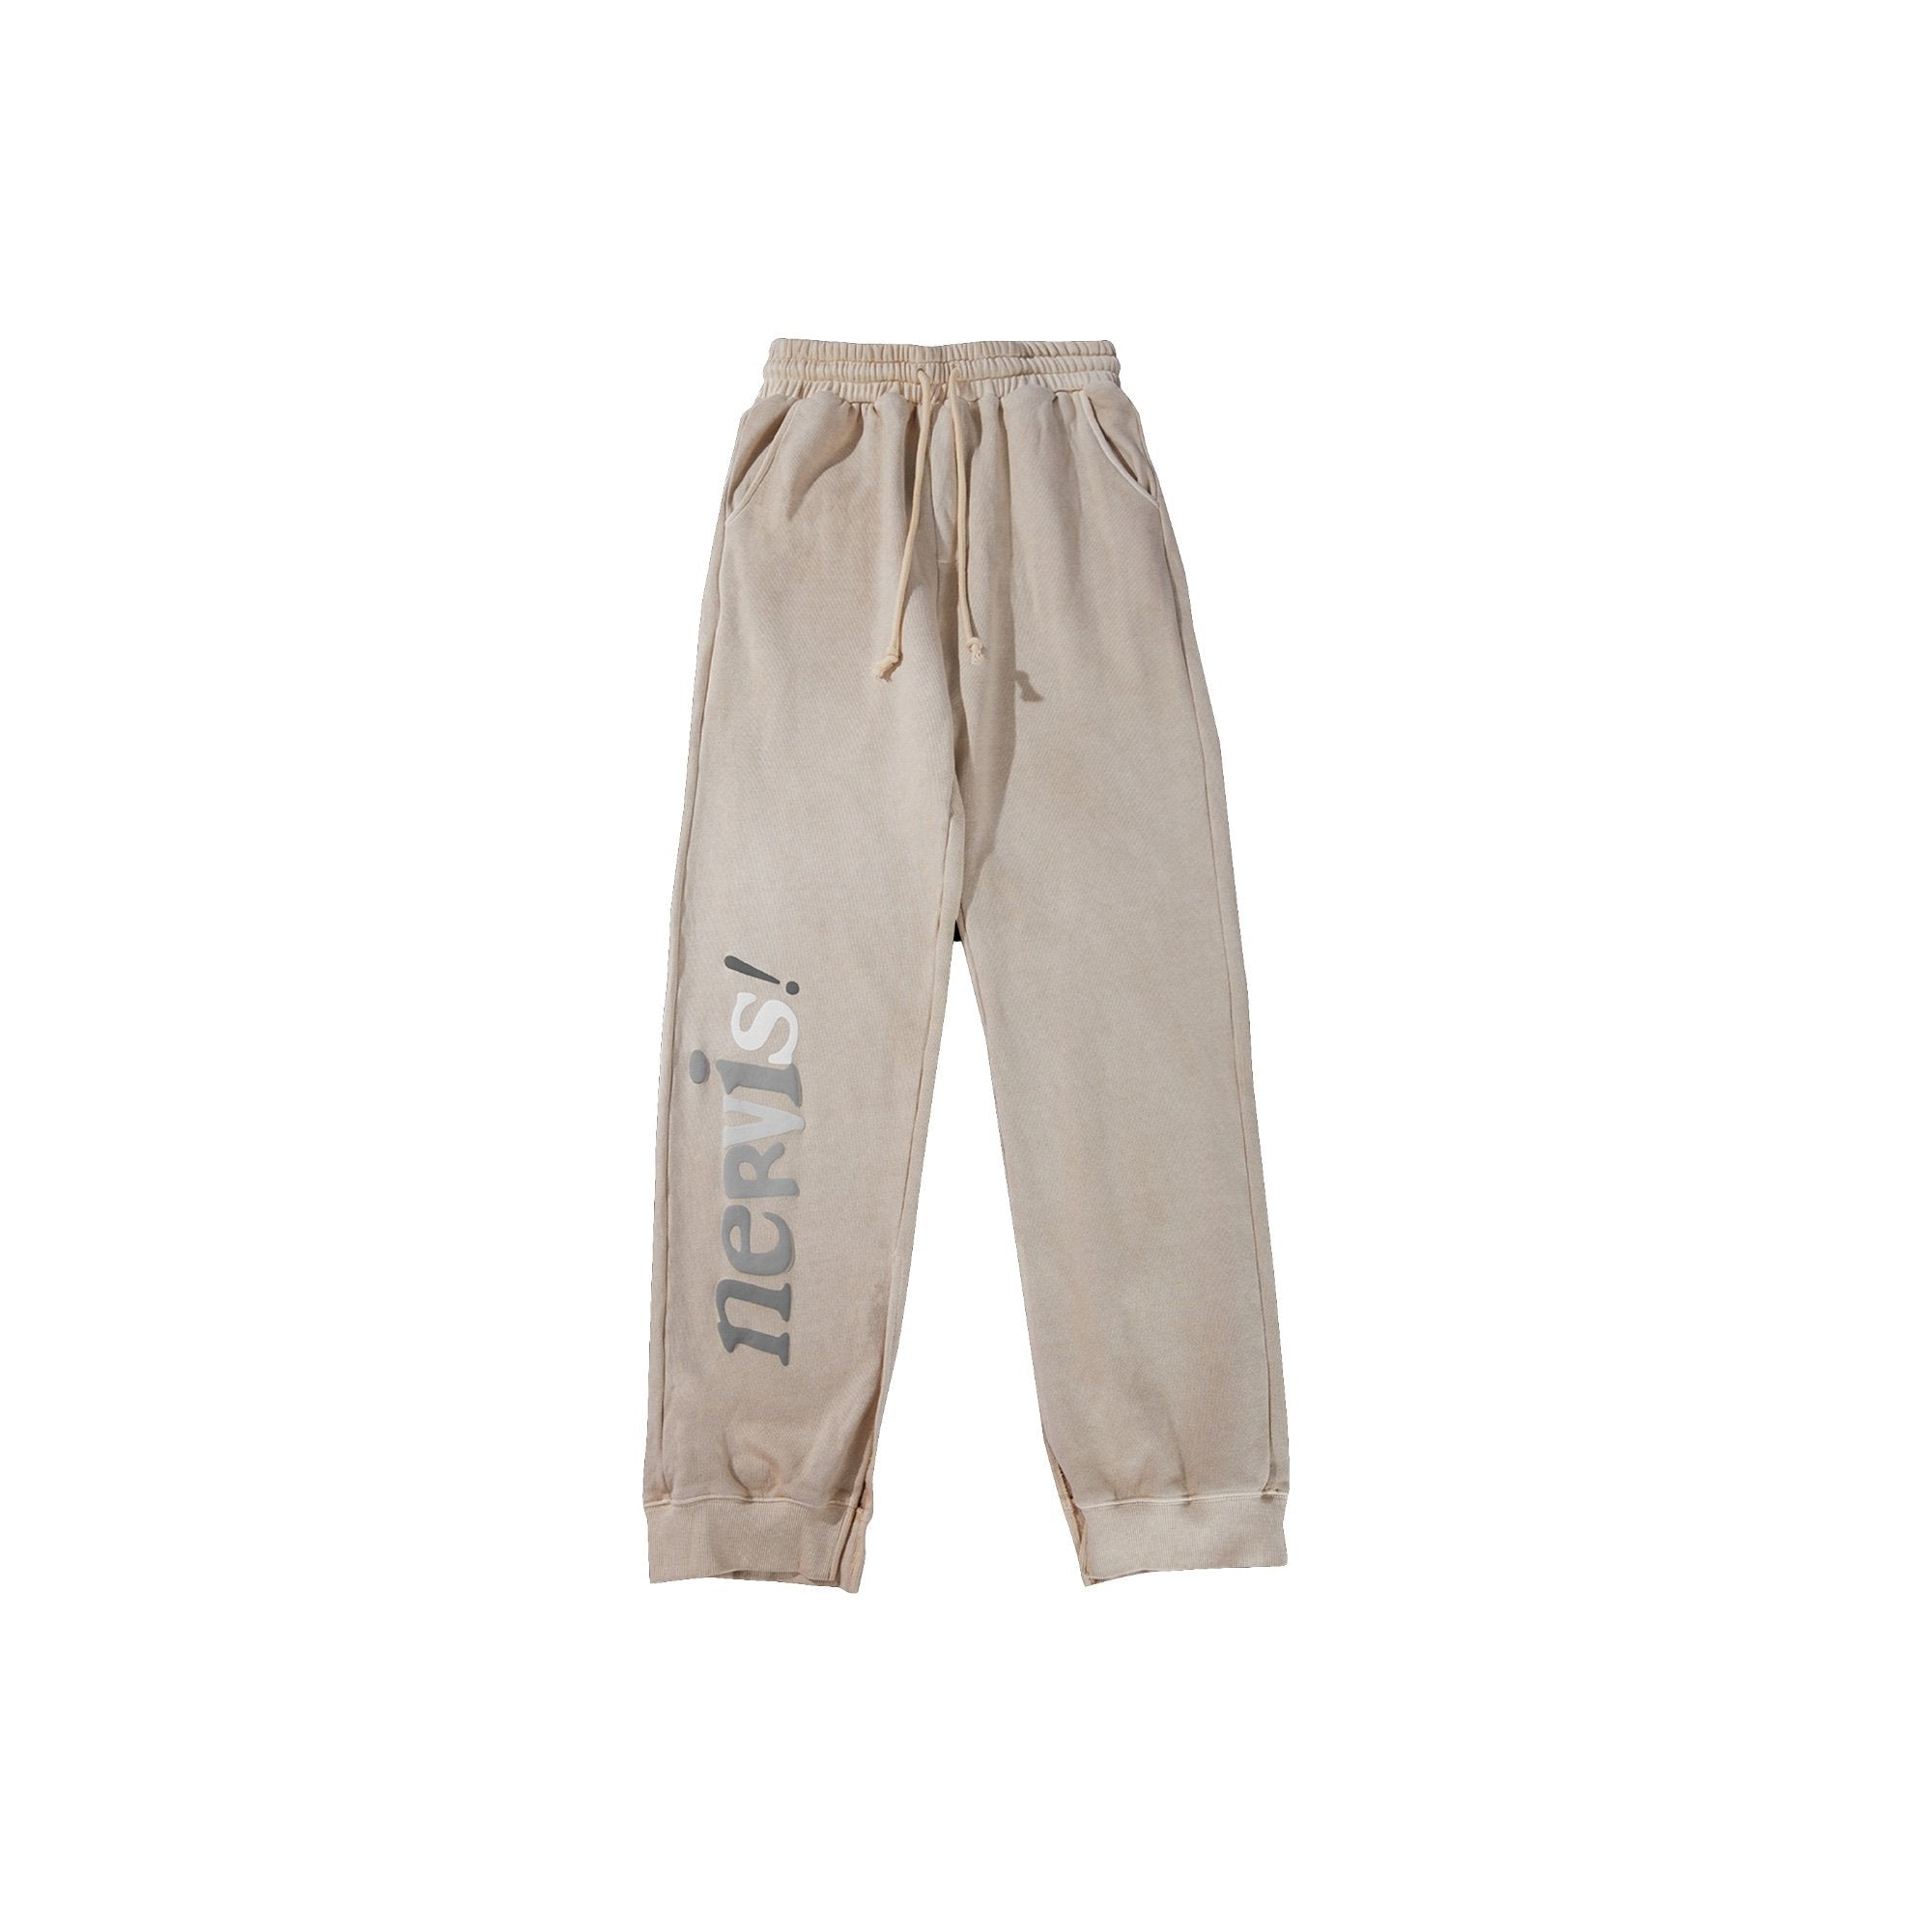 MAYHEM Nervis Tan Puff-print Lounge Pants | MADA IN CHINA